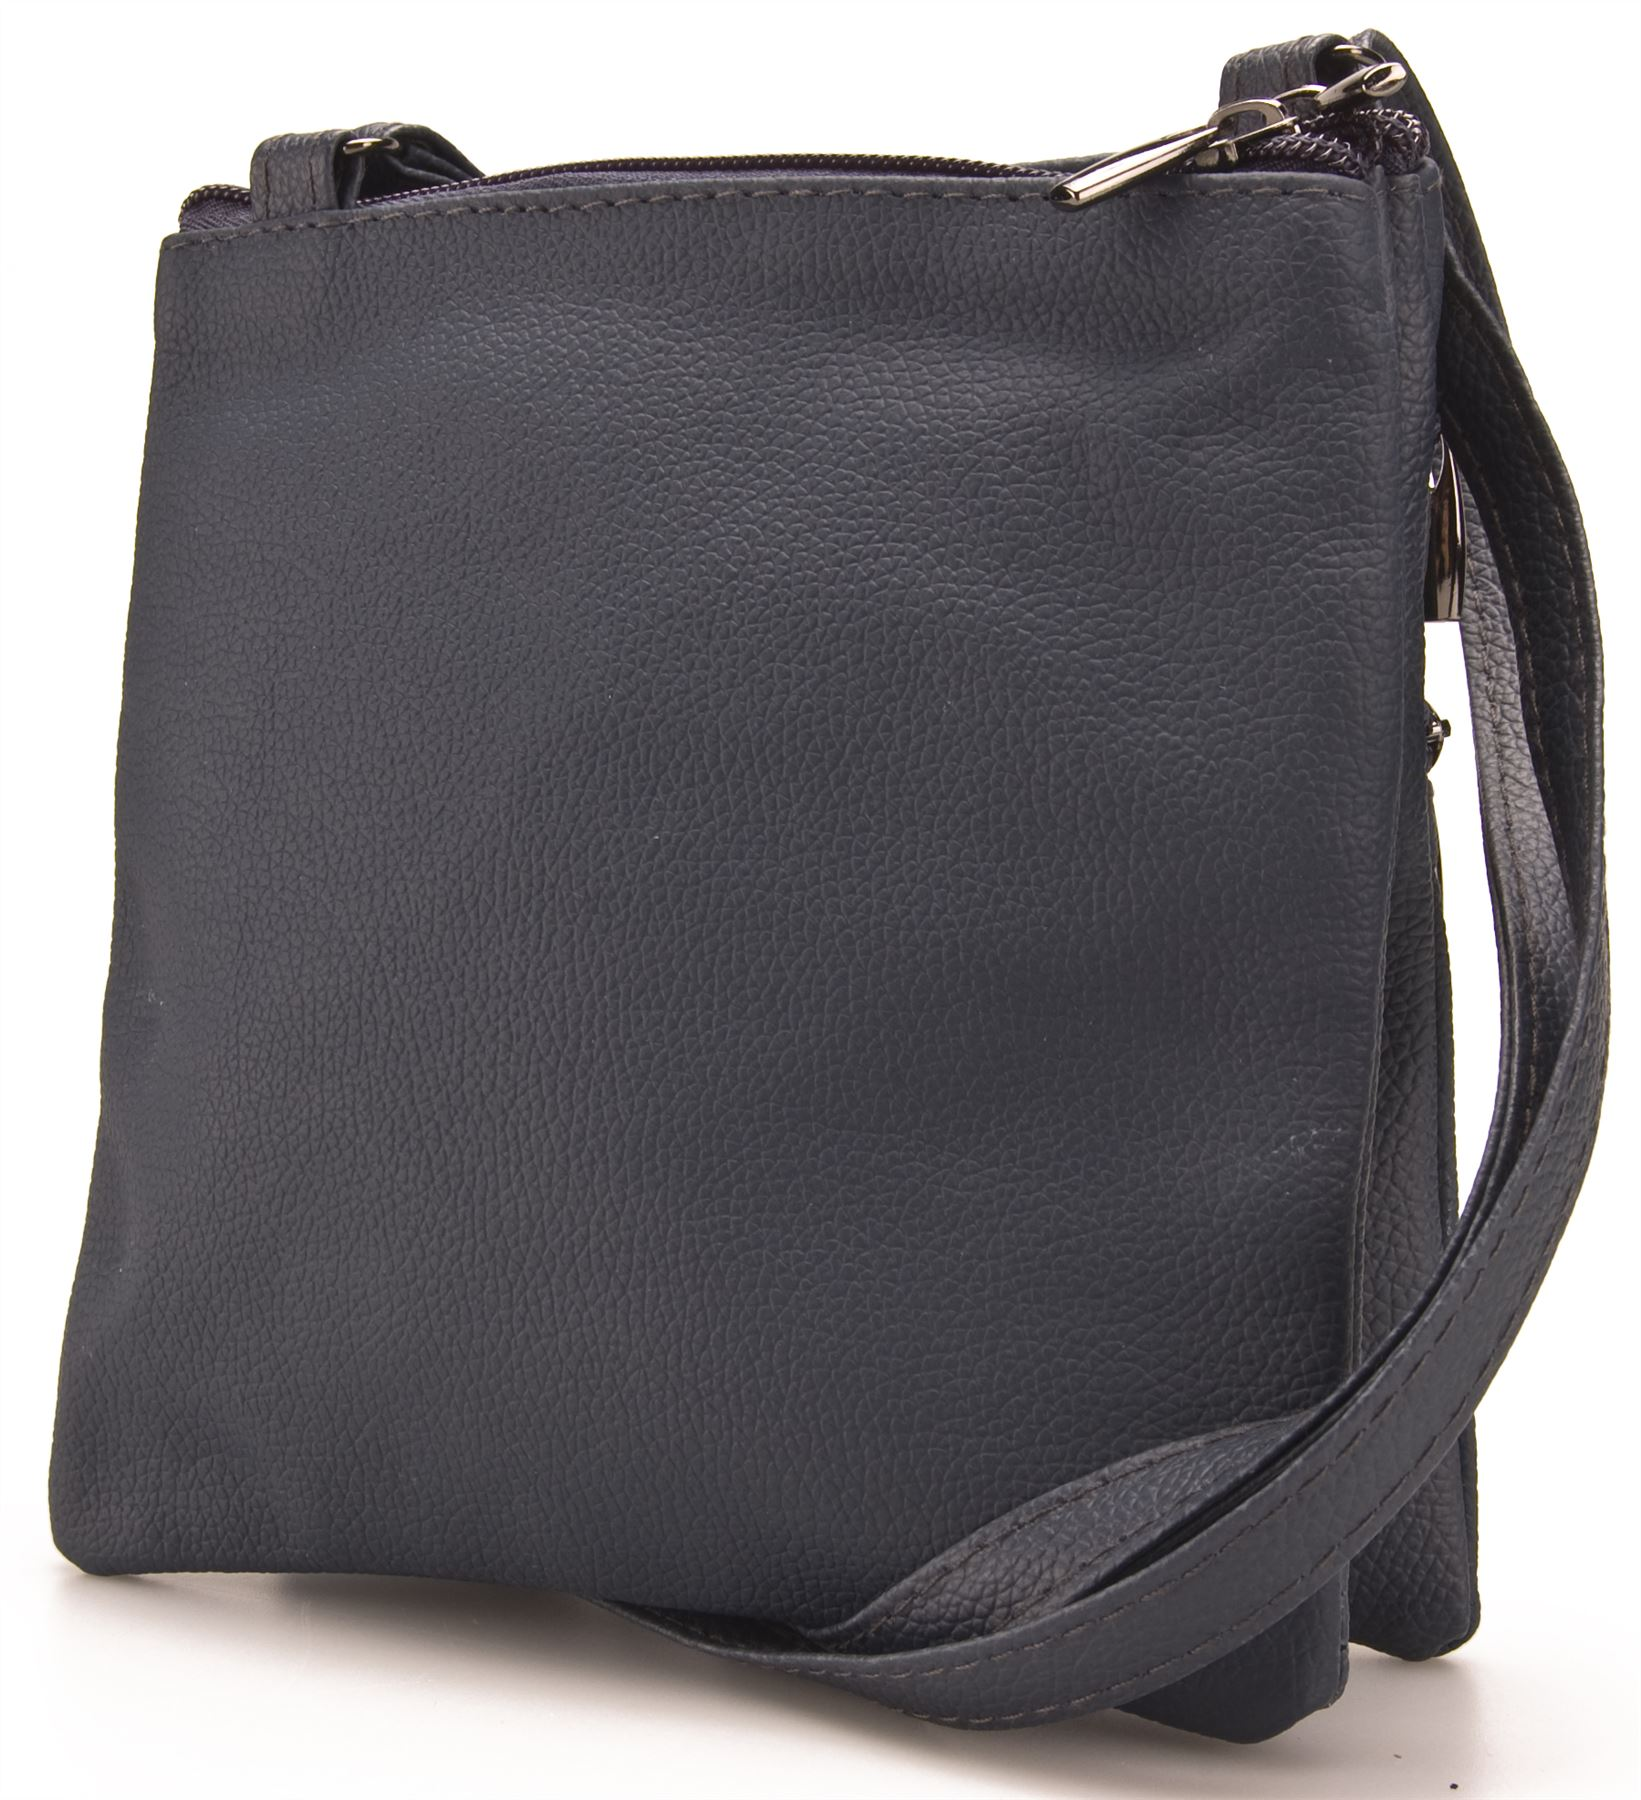 New-Lorenz-Genuine-Soft-Leather-Ladies-Cross-Body-Shoulder-Bag-Real-1941-Small